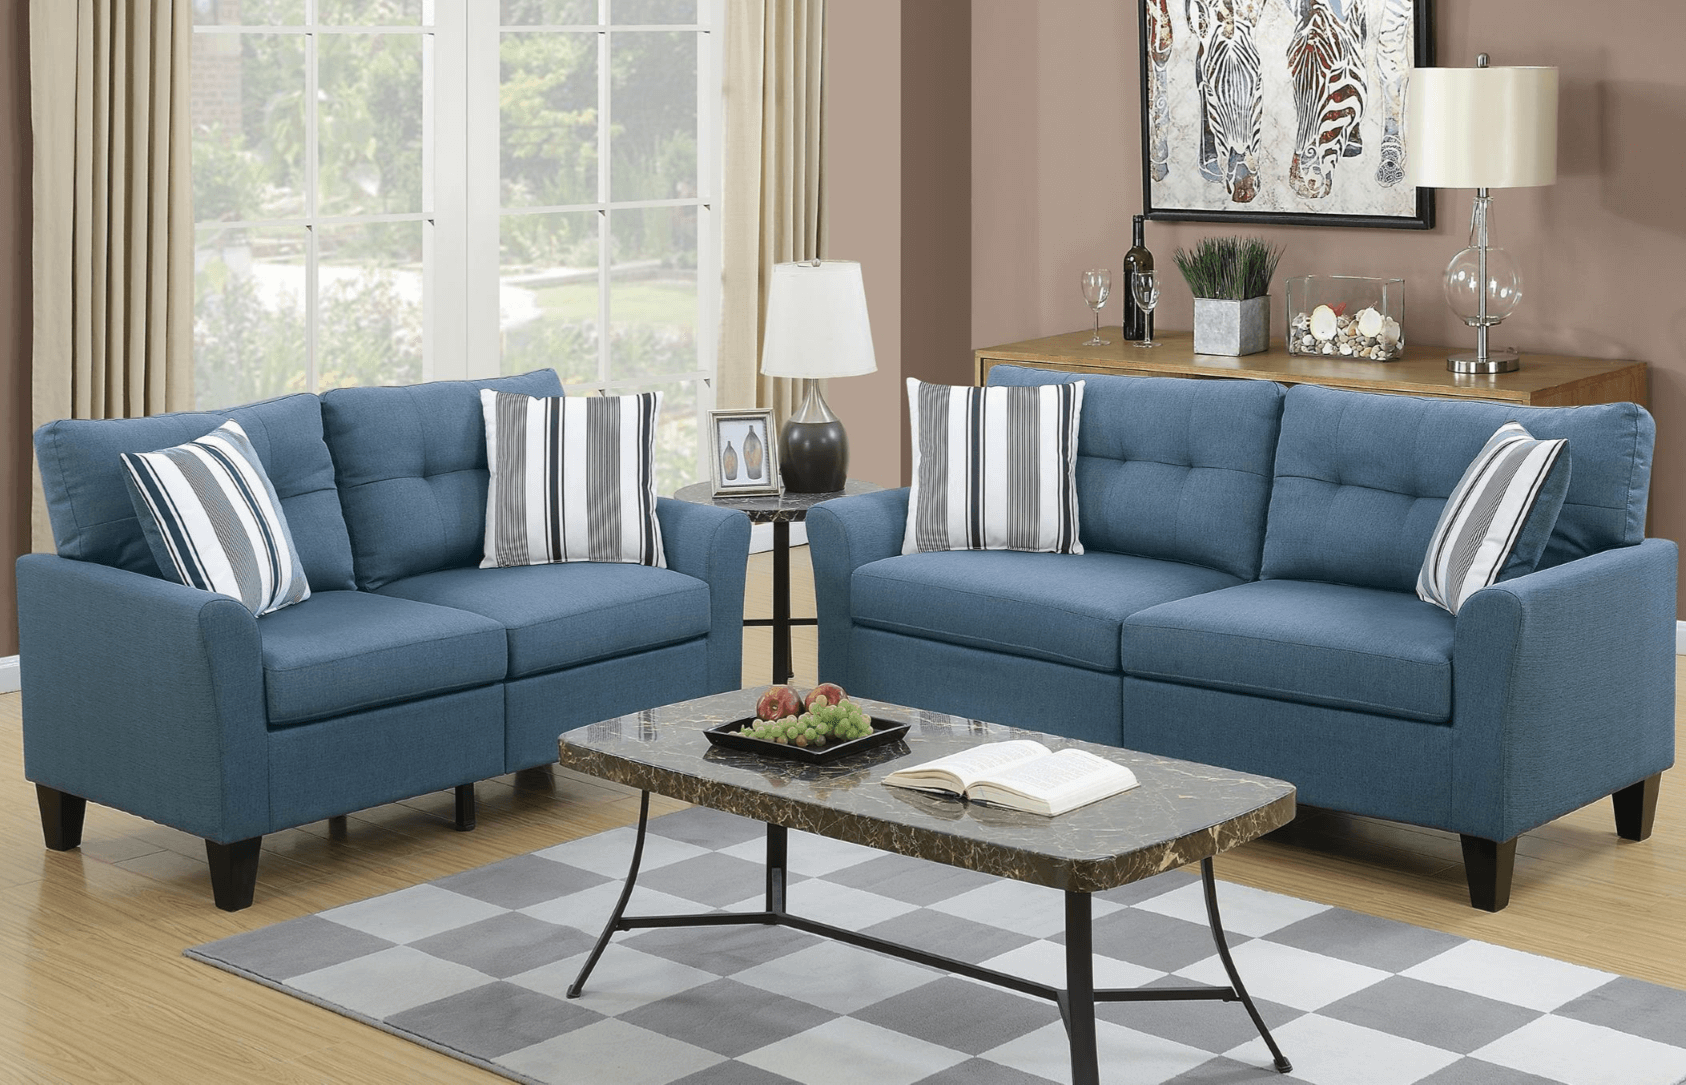 Melbury Fabric Lounge Suite In Blue From Chaise Sofas In Perth